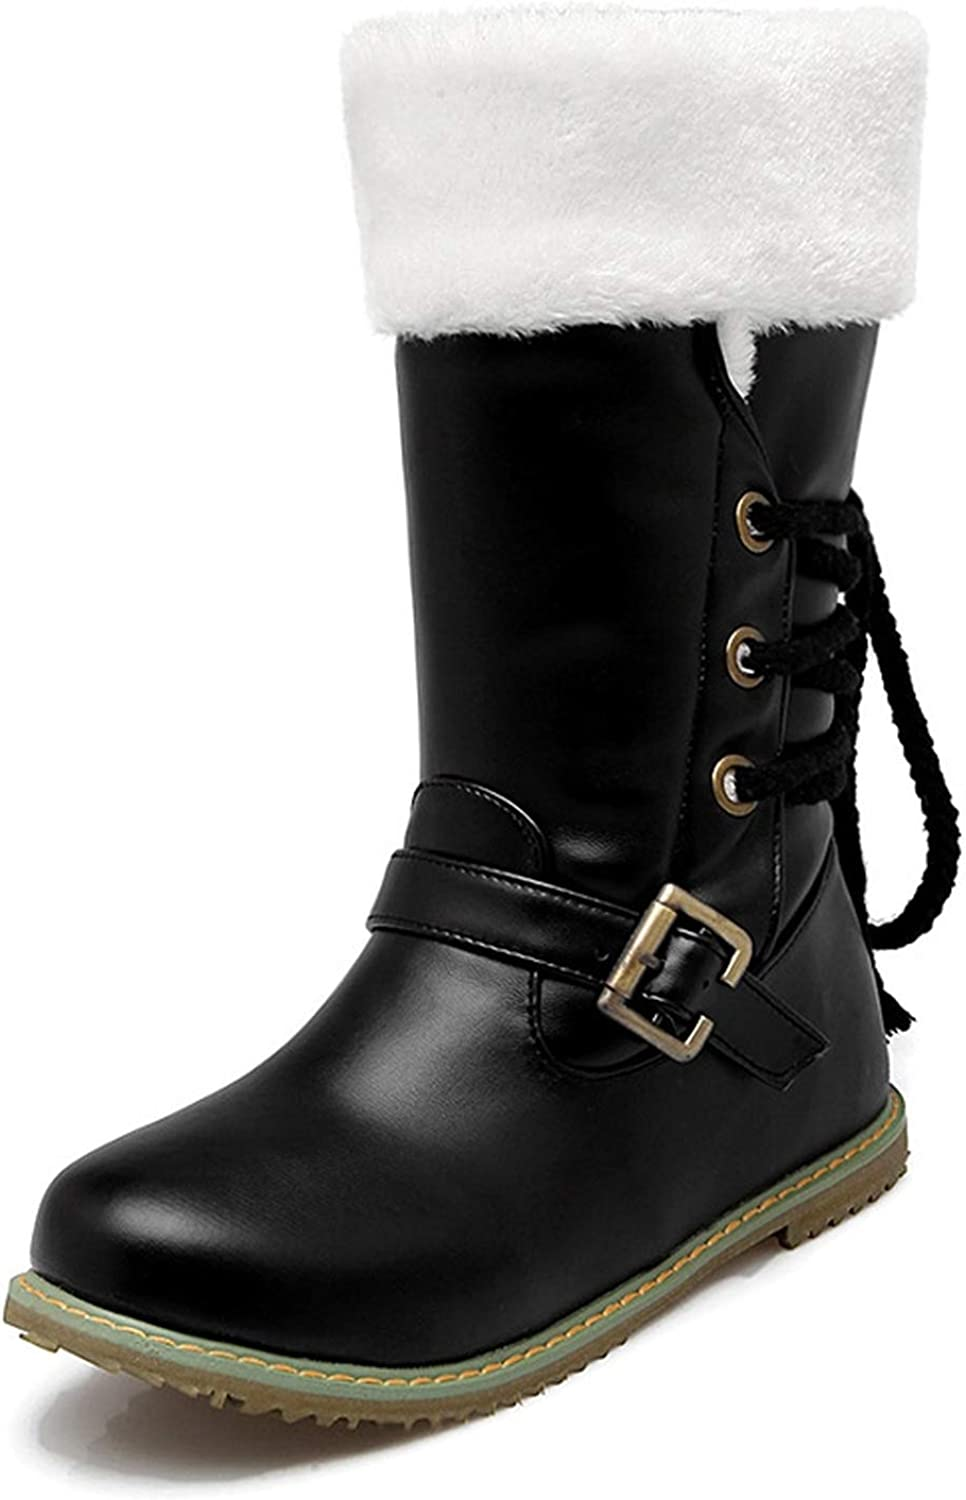 Winter Snow Boots Waterproof Plush Cotton-Padded shoes Women Motorcycle Martin Boots shoes 34-43